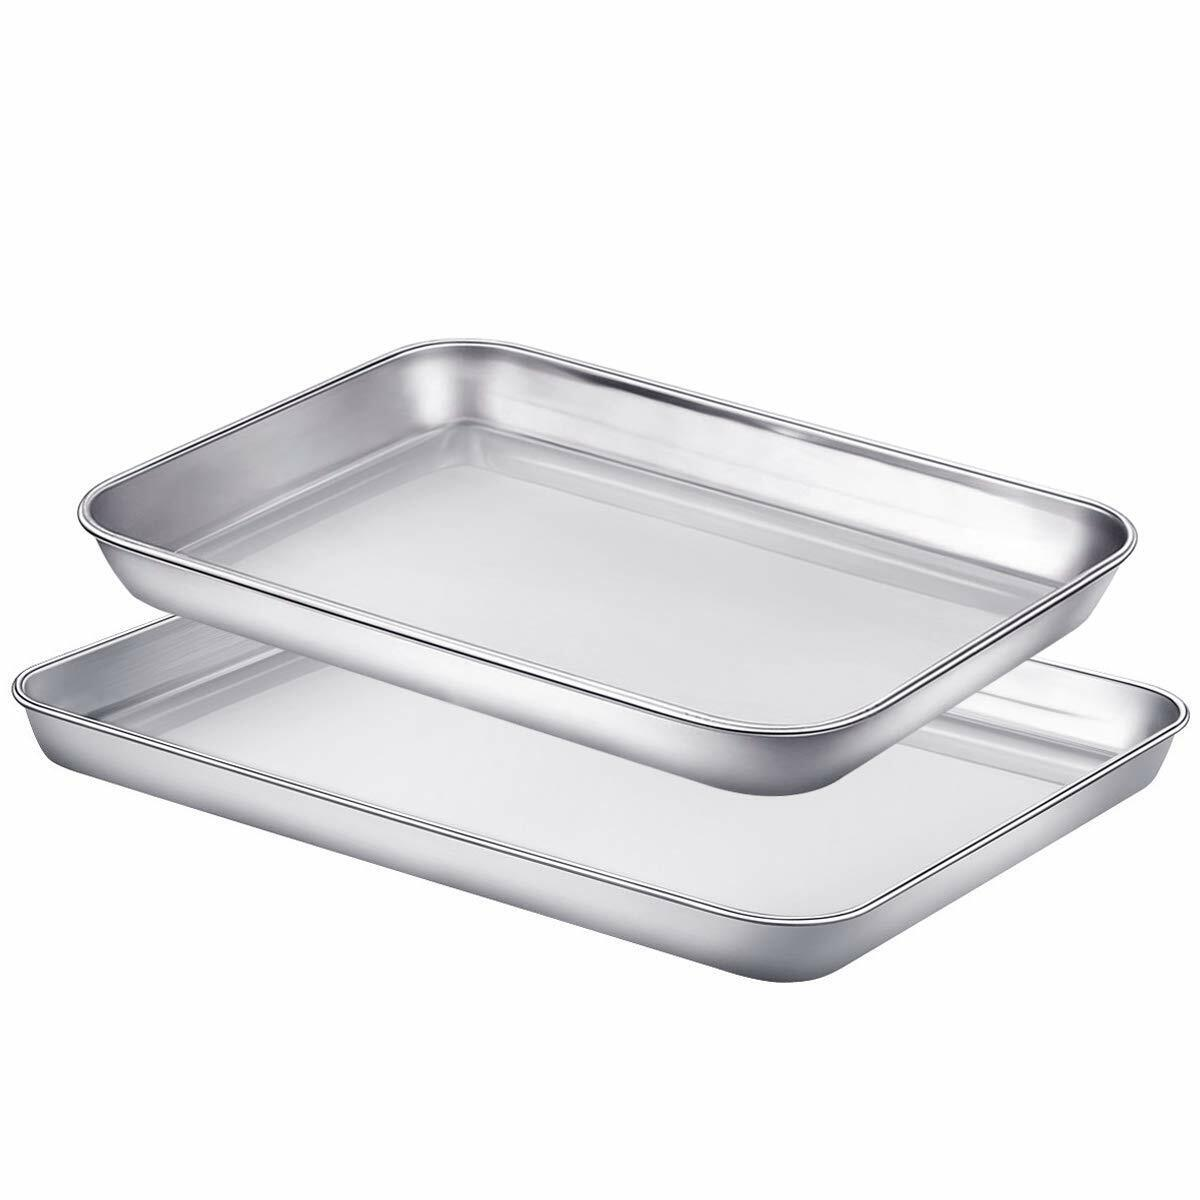 Cookie Sheets Toaster Oven Pans for Baking, Small Stainless